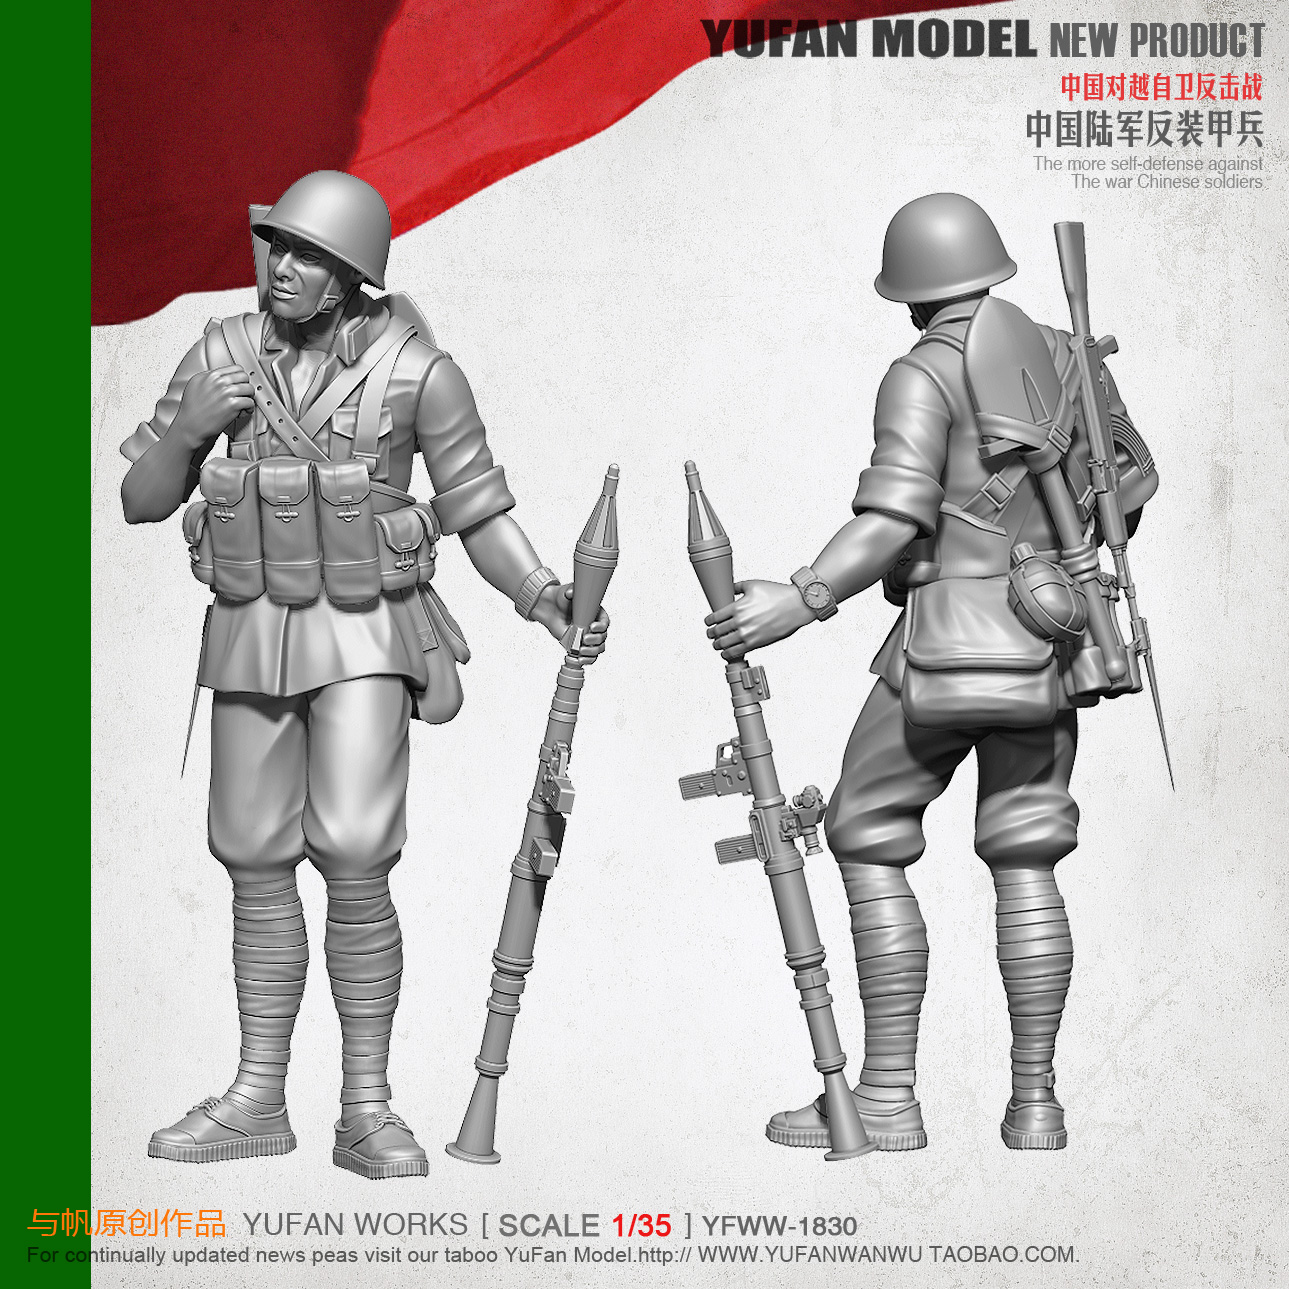 1/35 79 Anti-Armoured Army of Vietnam YFWW-1830 image